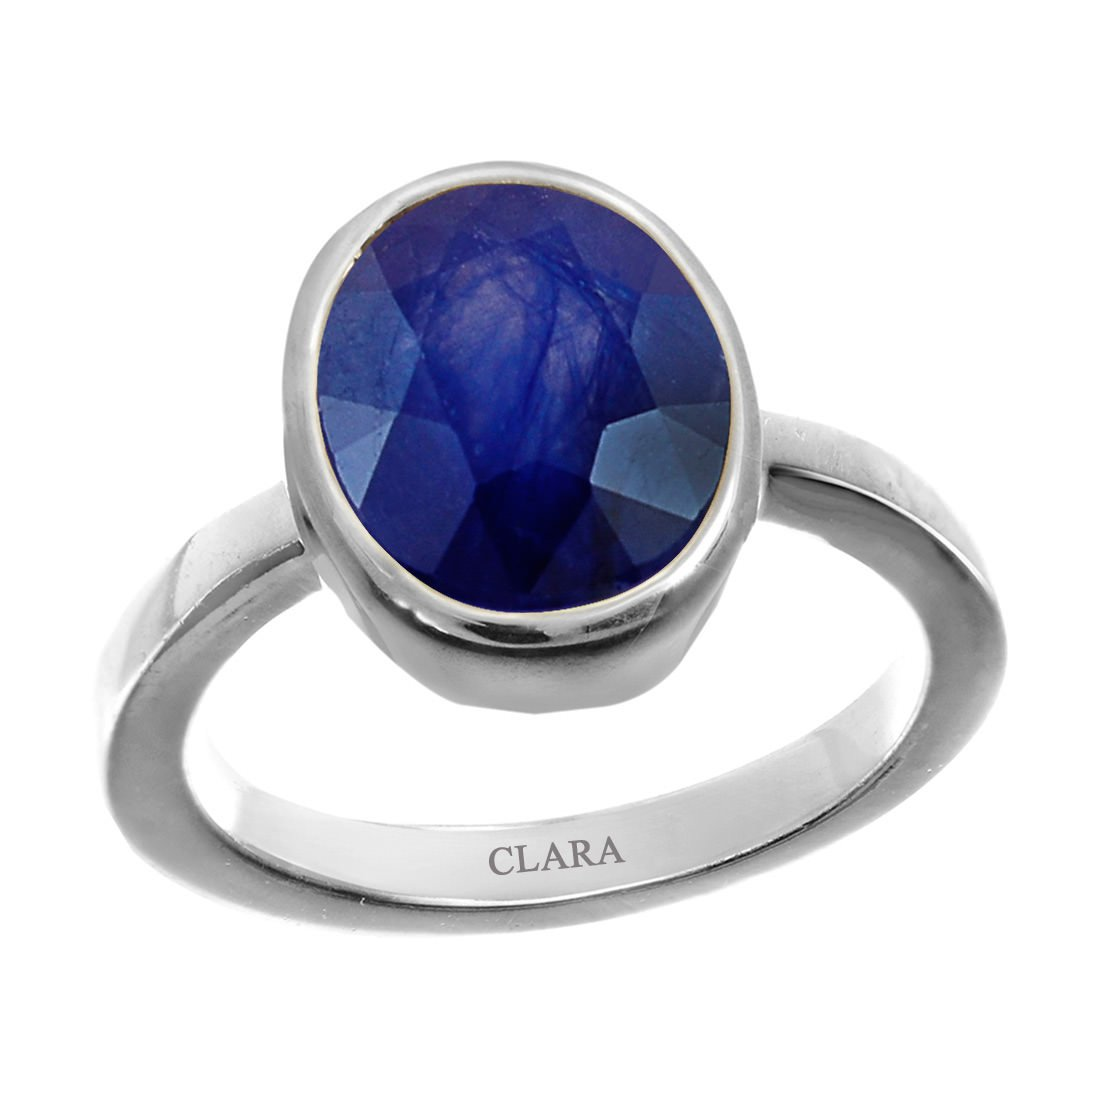 Clara Certified Blue Sapphire (Neelam) 6.5cts or 7.25ratti original stone Sterling Silver Astrological Ring for Men and Women by Clara